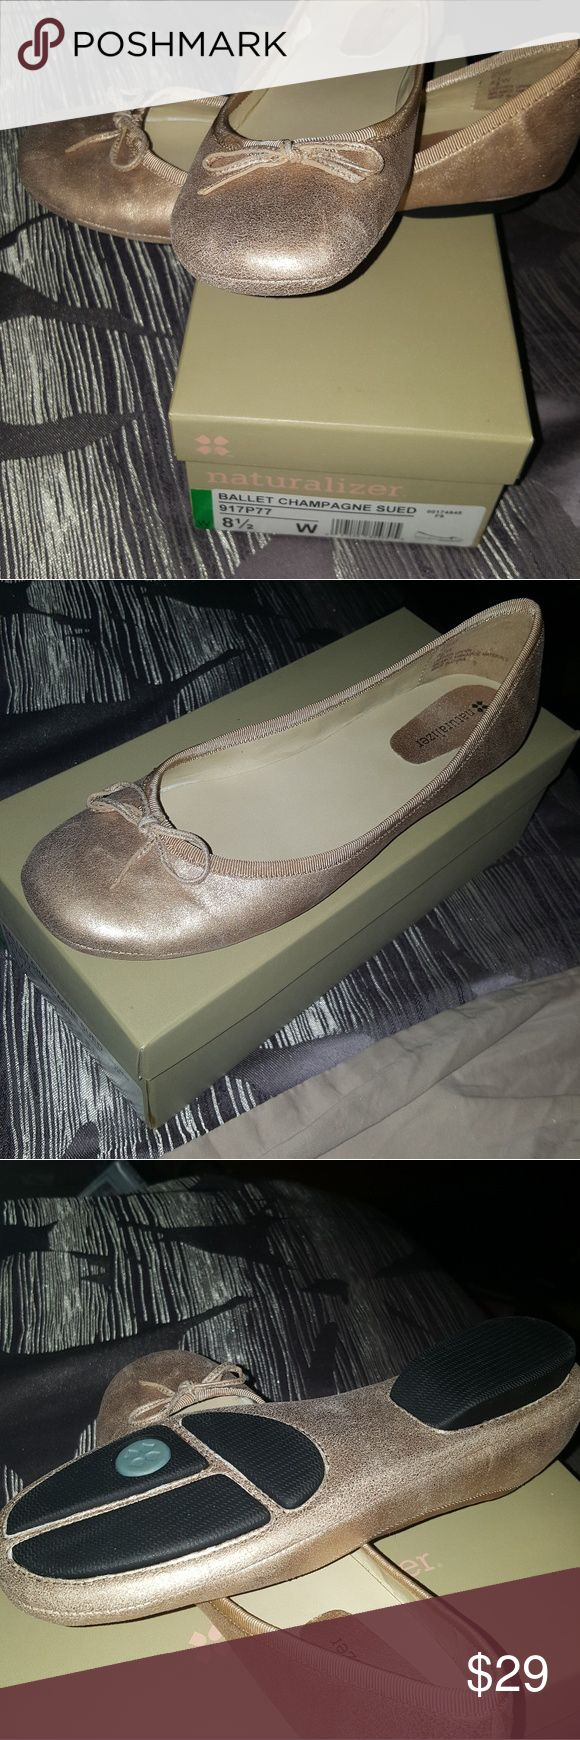 Brand new Naturalizer ballet size 81/2 Wide!! Brand new in box Naturalizer ballet champagne-colored shoes size 8 1/2 Wide!!  There is a small rip on the thin layer of the inner sole. This is a factory defect but is discreet and NOT AT ALL noticeable when wearing these beautys♡♡♡ Naturalizer Shoes